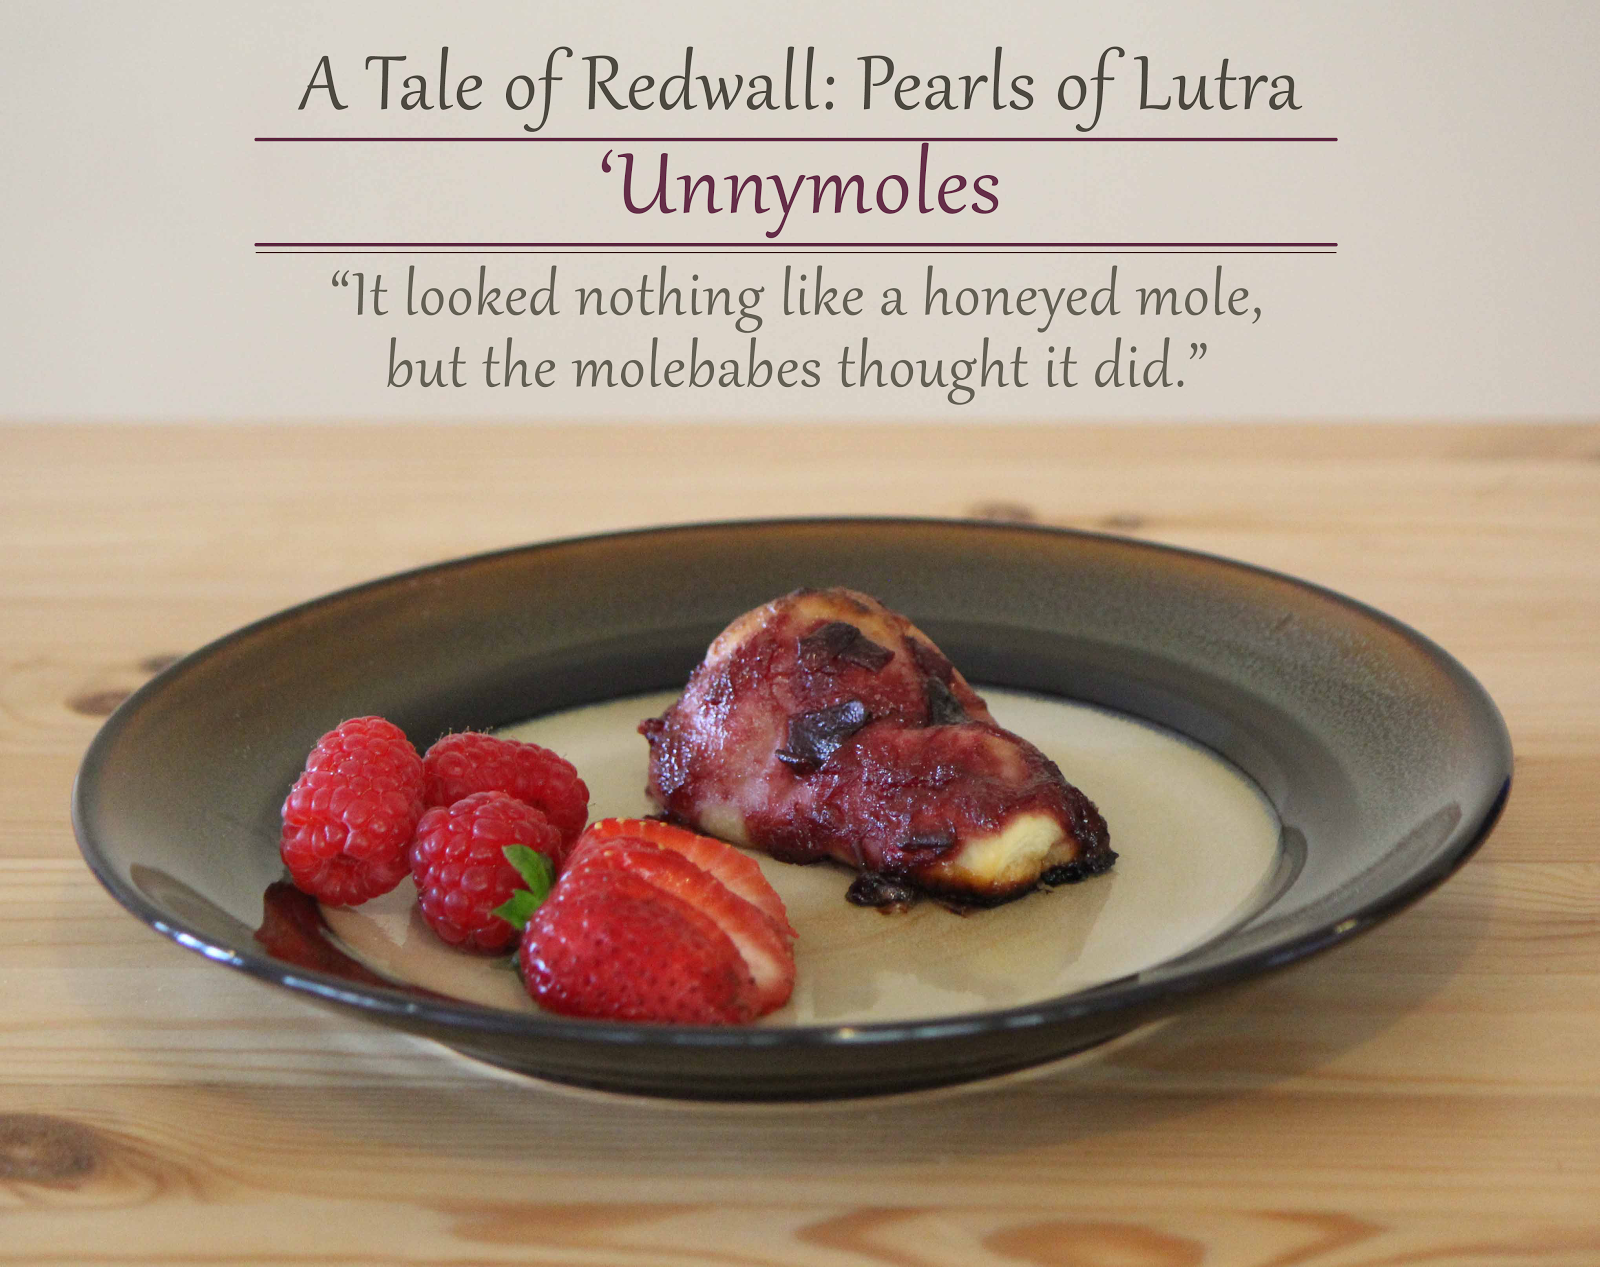 Unnymoles are Redwall pastries stuffed with berries and slathered with honey